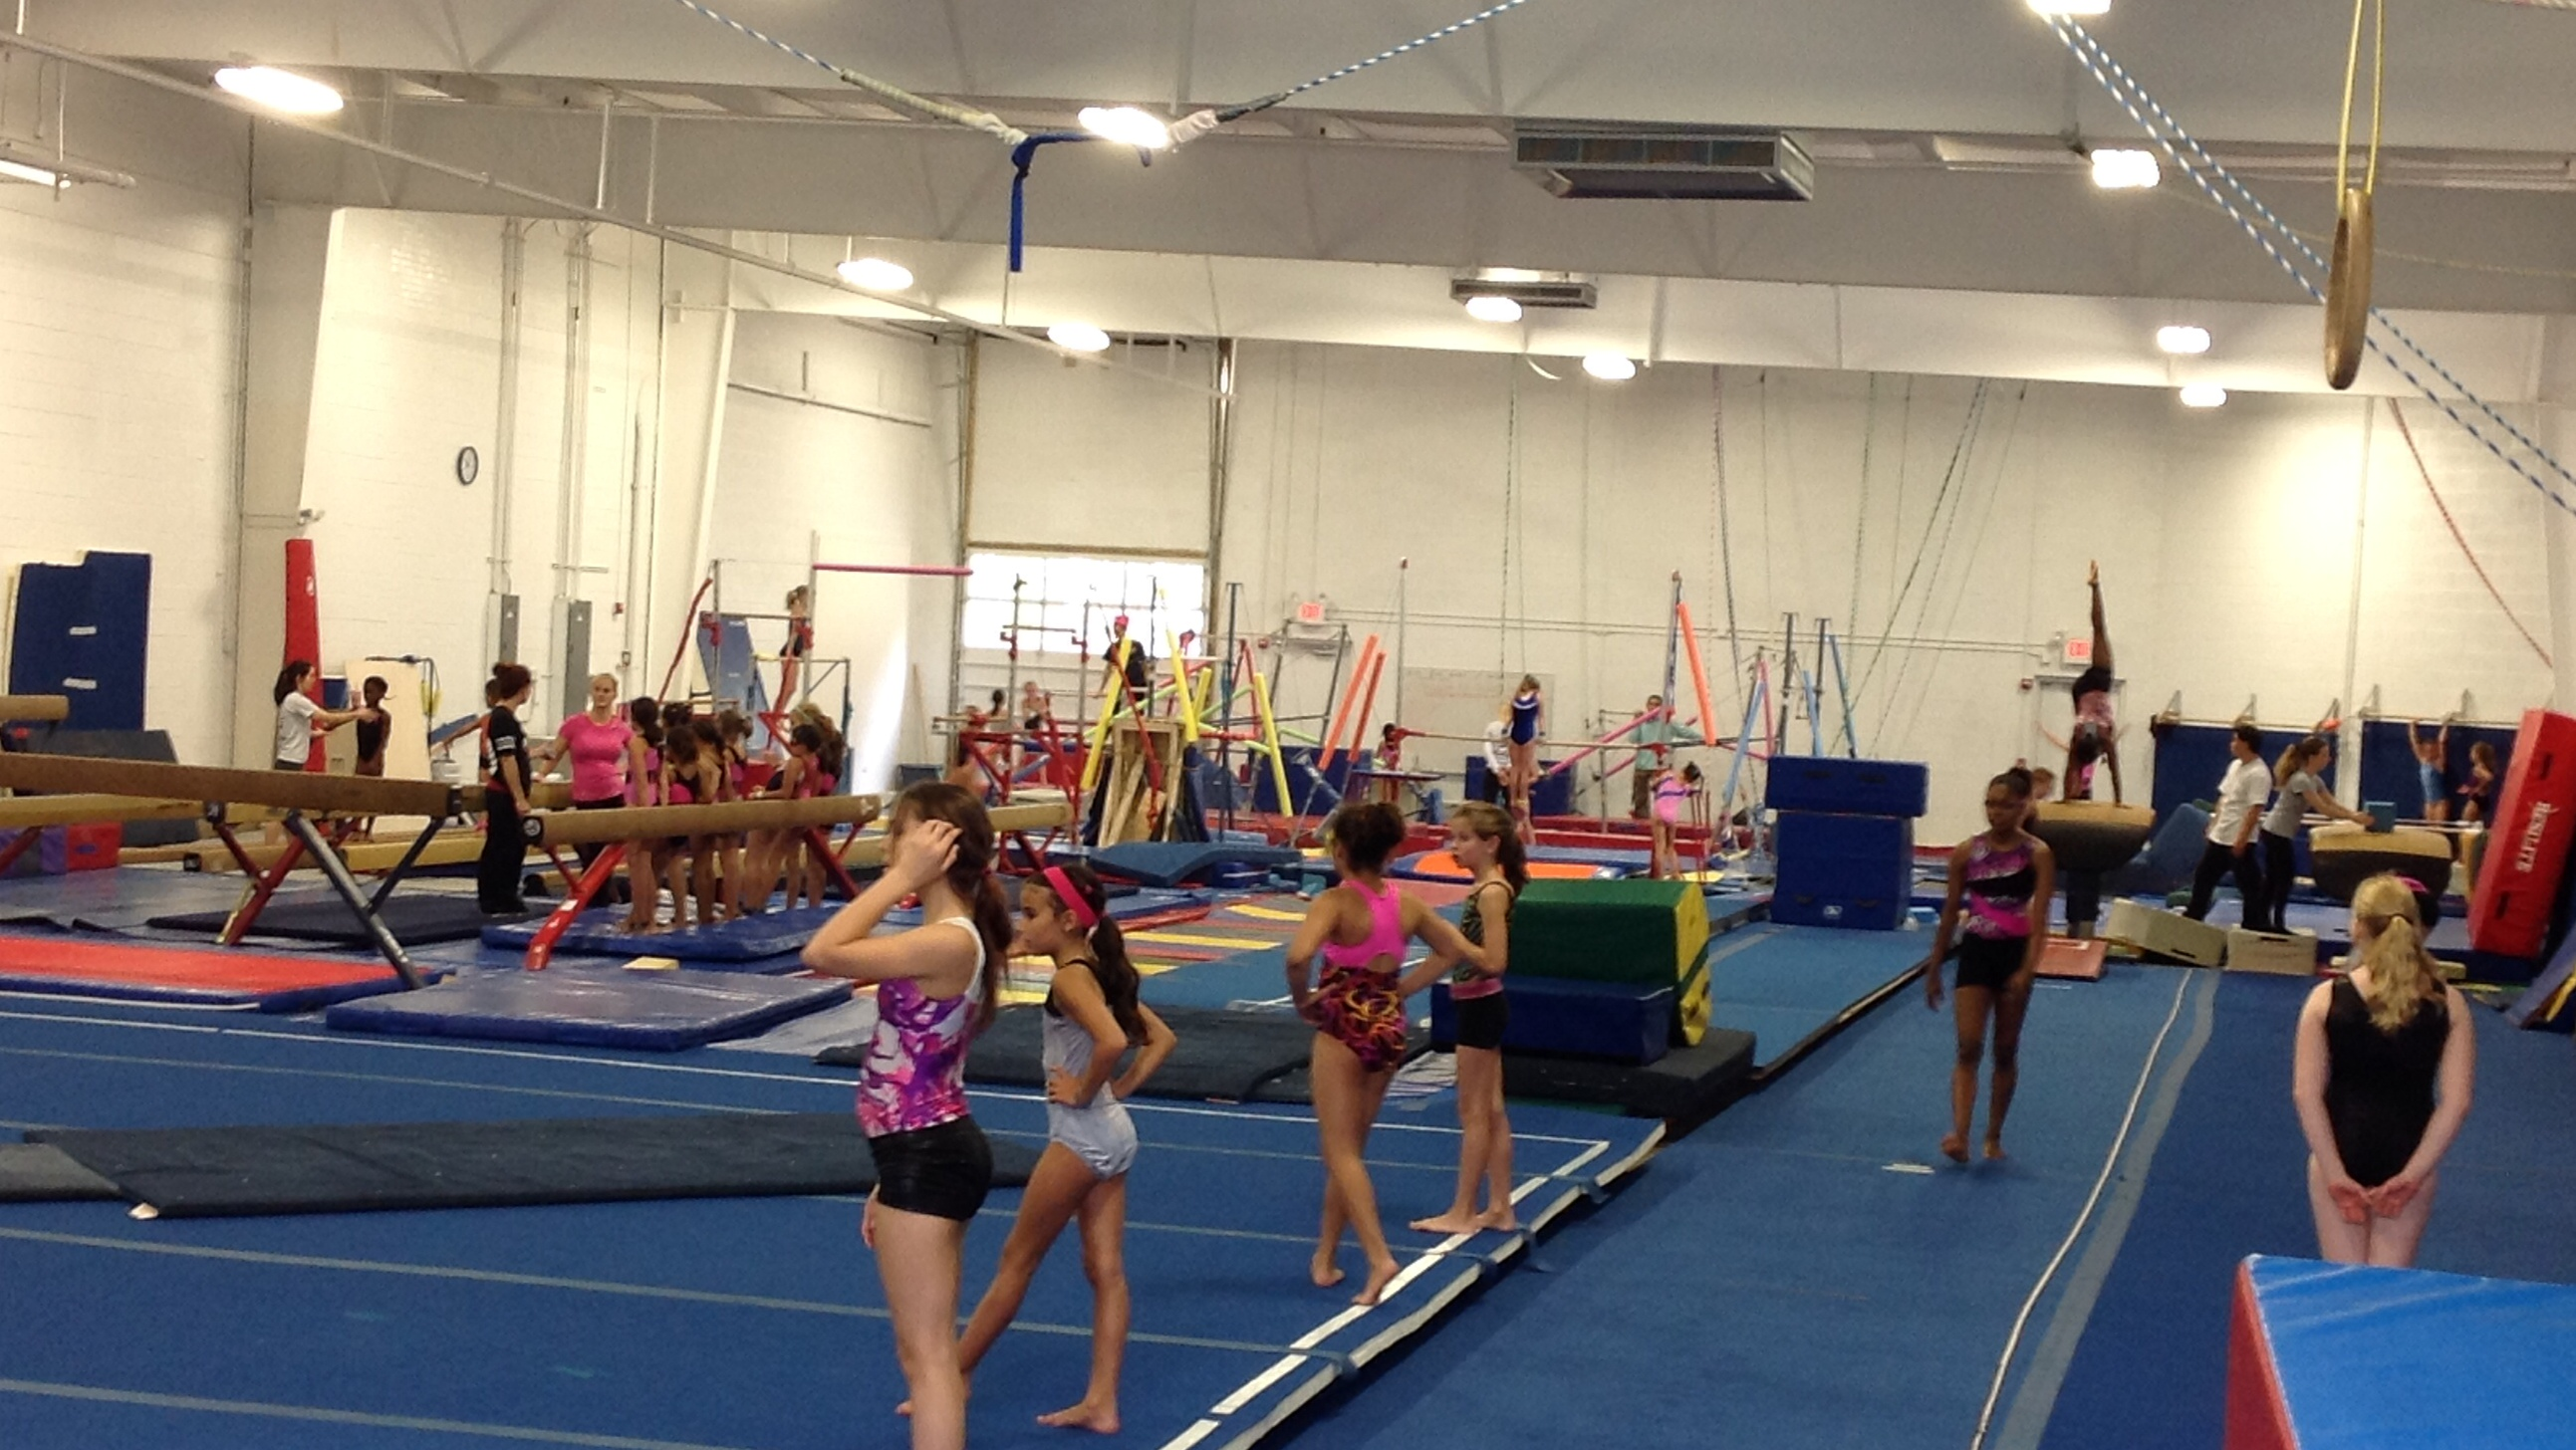 Winwin gymnastics - Win Win Currently Has A 21 Member Mason Dixon Team They Are In Practice At The Midway Facility